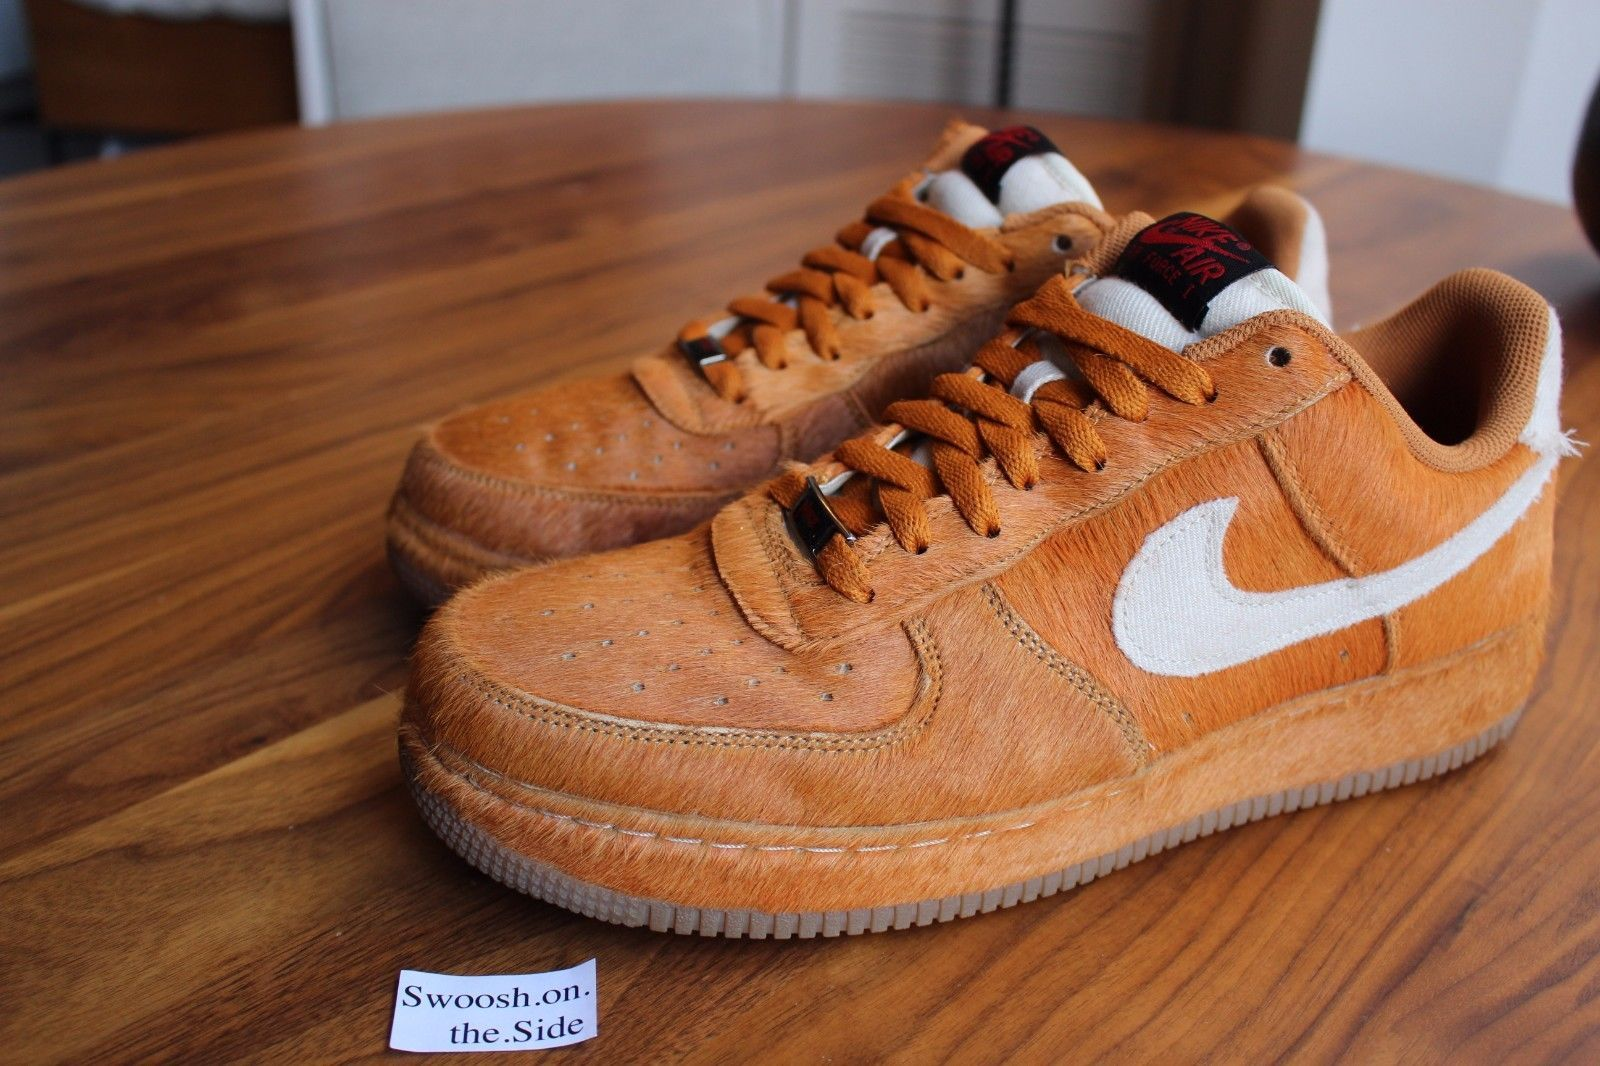 Nike air force 1 mid premium thanksgiving sold out - 2003 Forest Green Nike Air Max 1 Size 10 Patta 112 Curry Cork Usa 90 Jordan 3 11